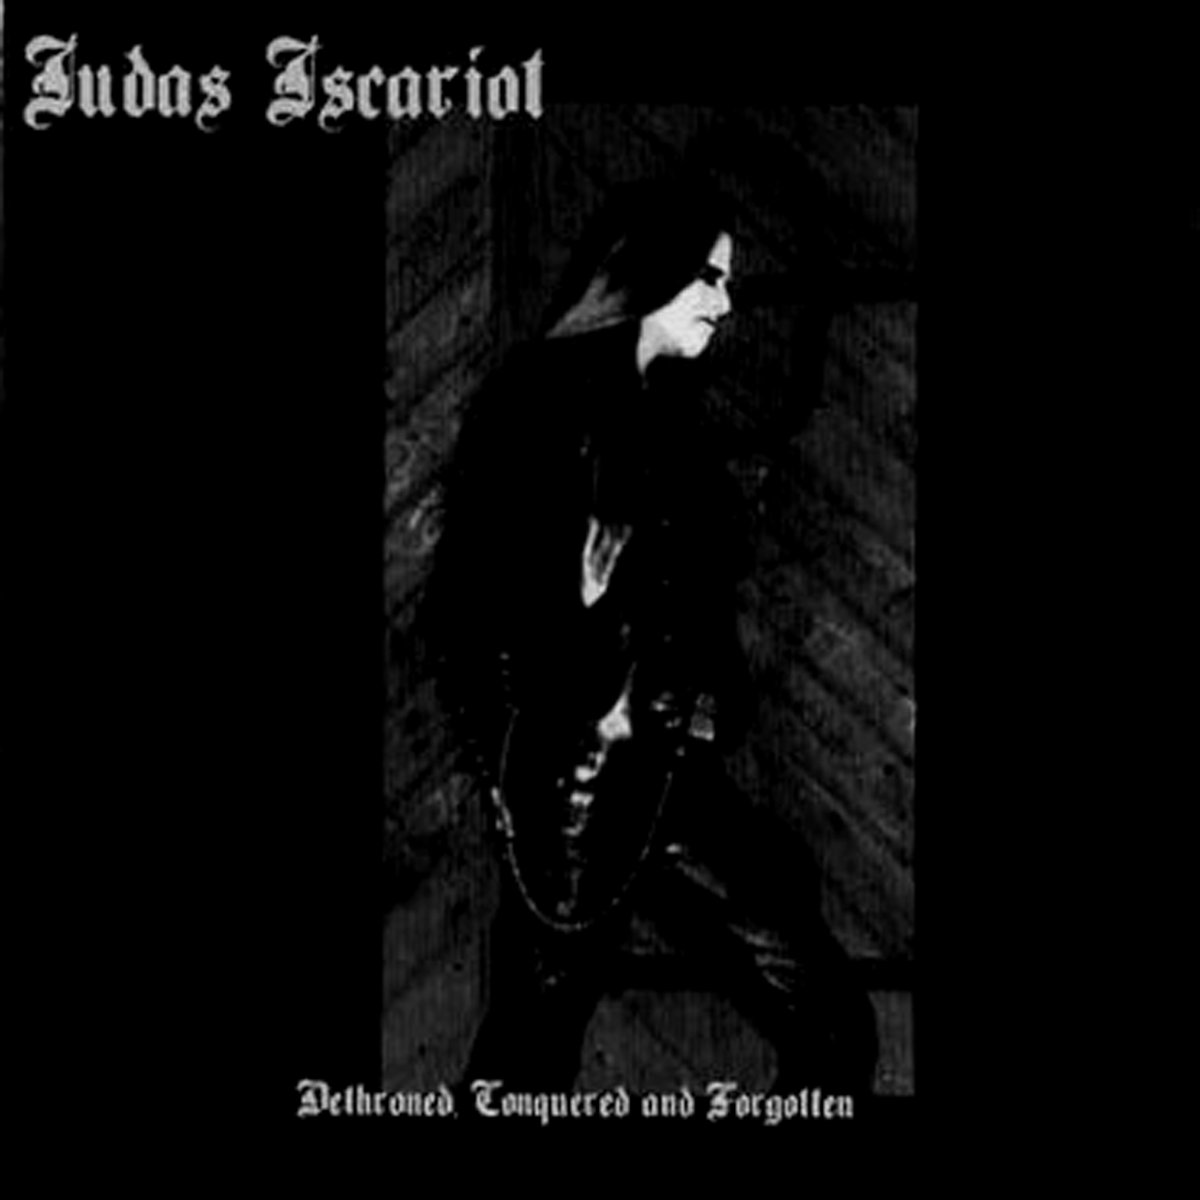 Compact Disc Version Of This Classic Judas Iscariot EP Recorded In 2000 Distributed By Ascension Monuments Media Released Red Stream Records USA